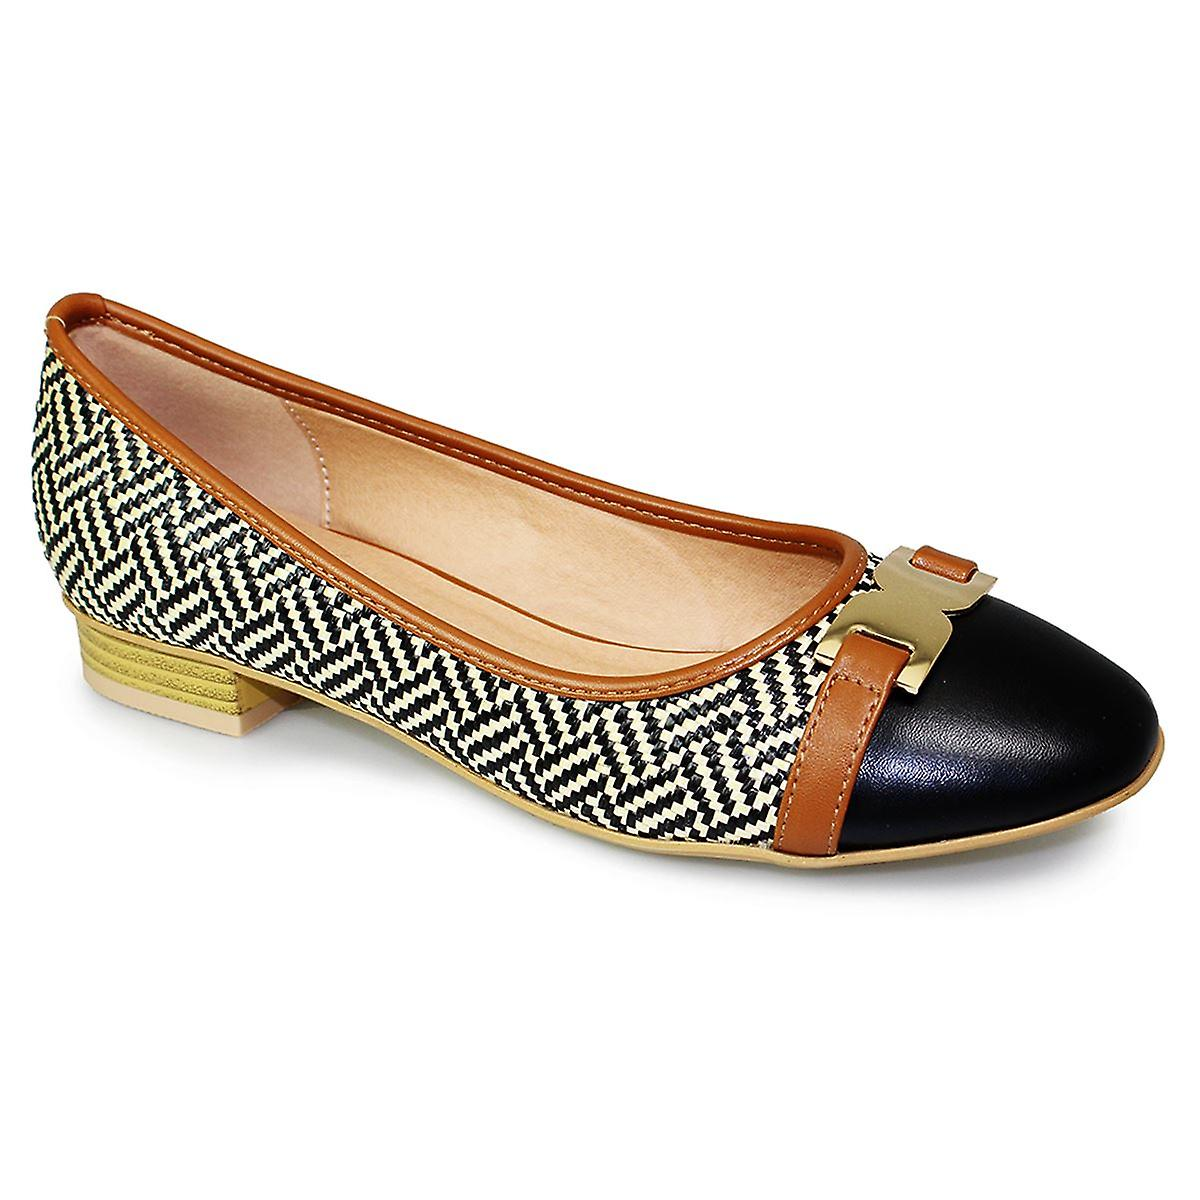 Ladies Interweave Low Heel Slip On Gold Buckle Two Tone Pumps Flats Shoes